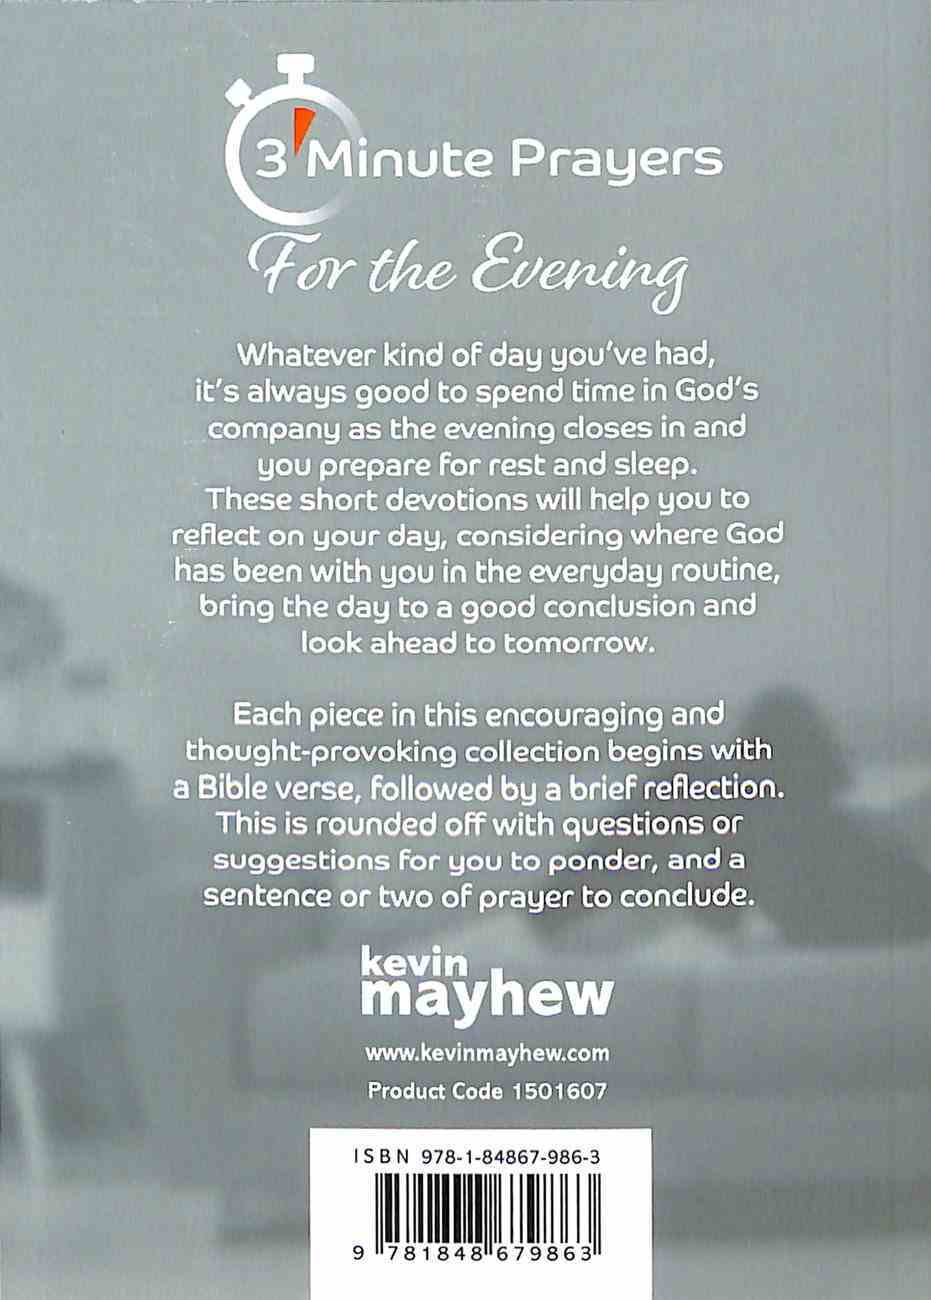 3-Minute Prayers For the Evening Paperback